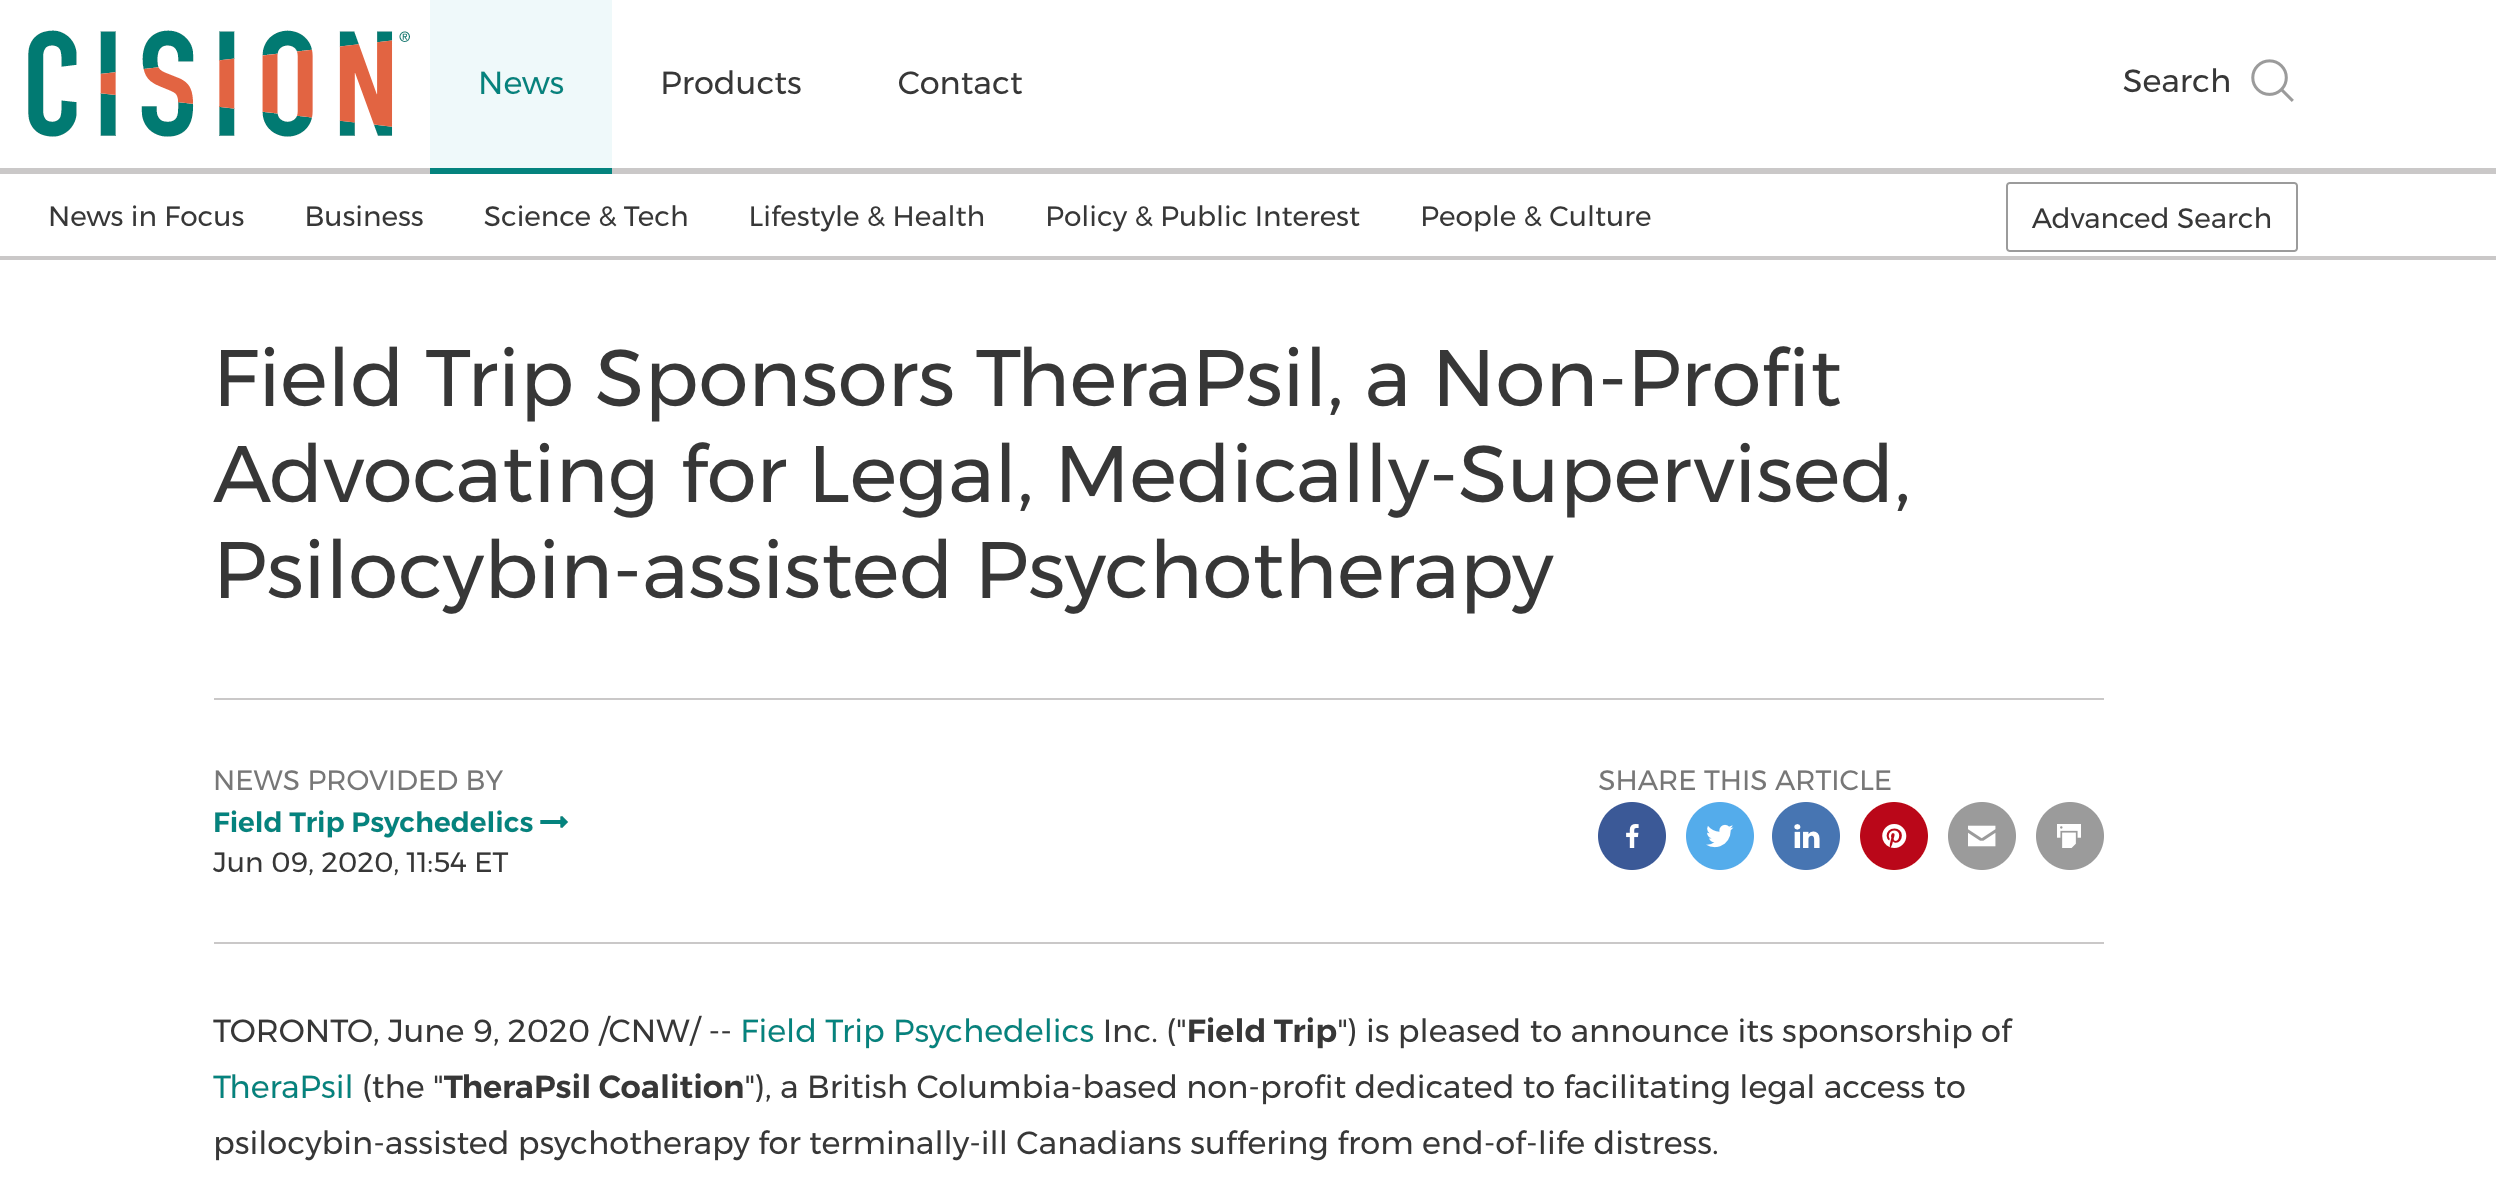 Field Trip Sponsors TheraPsil, a Non-Profit Advocating for Legal, Medically-Supervised, Psilocybin-assisted Psychotherapy